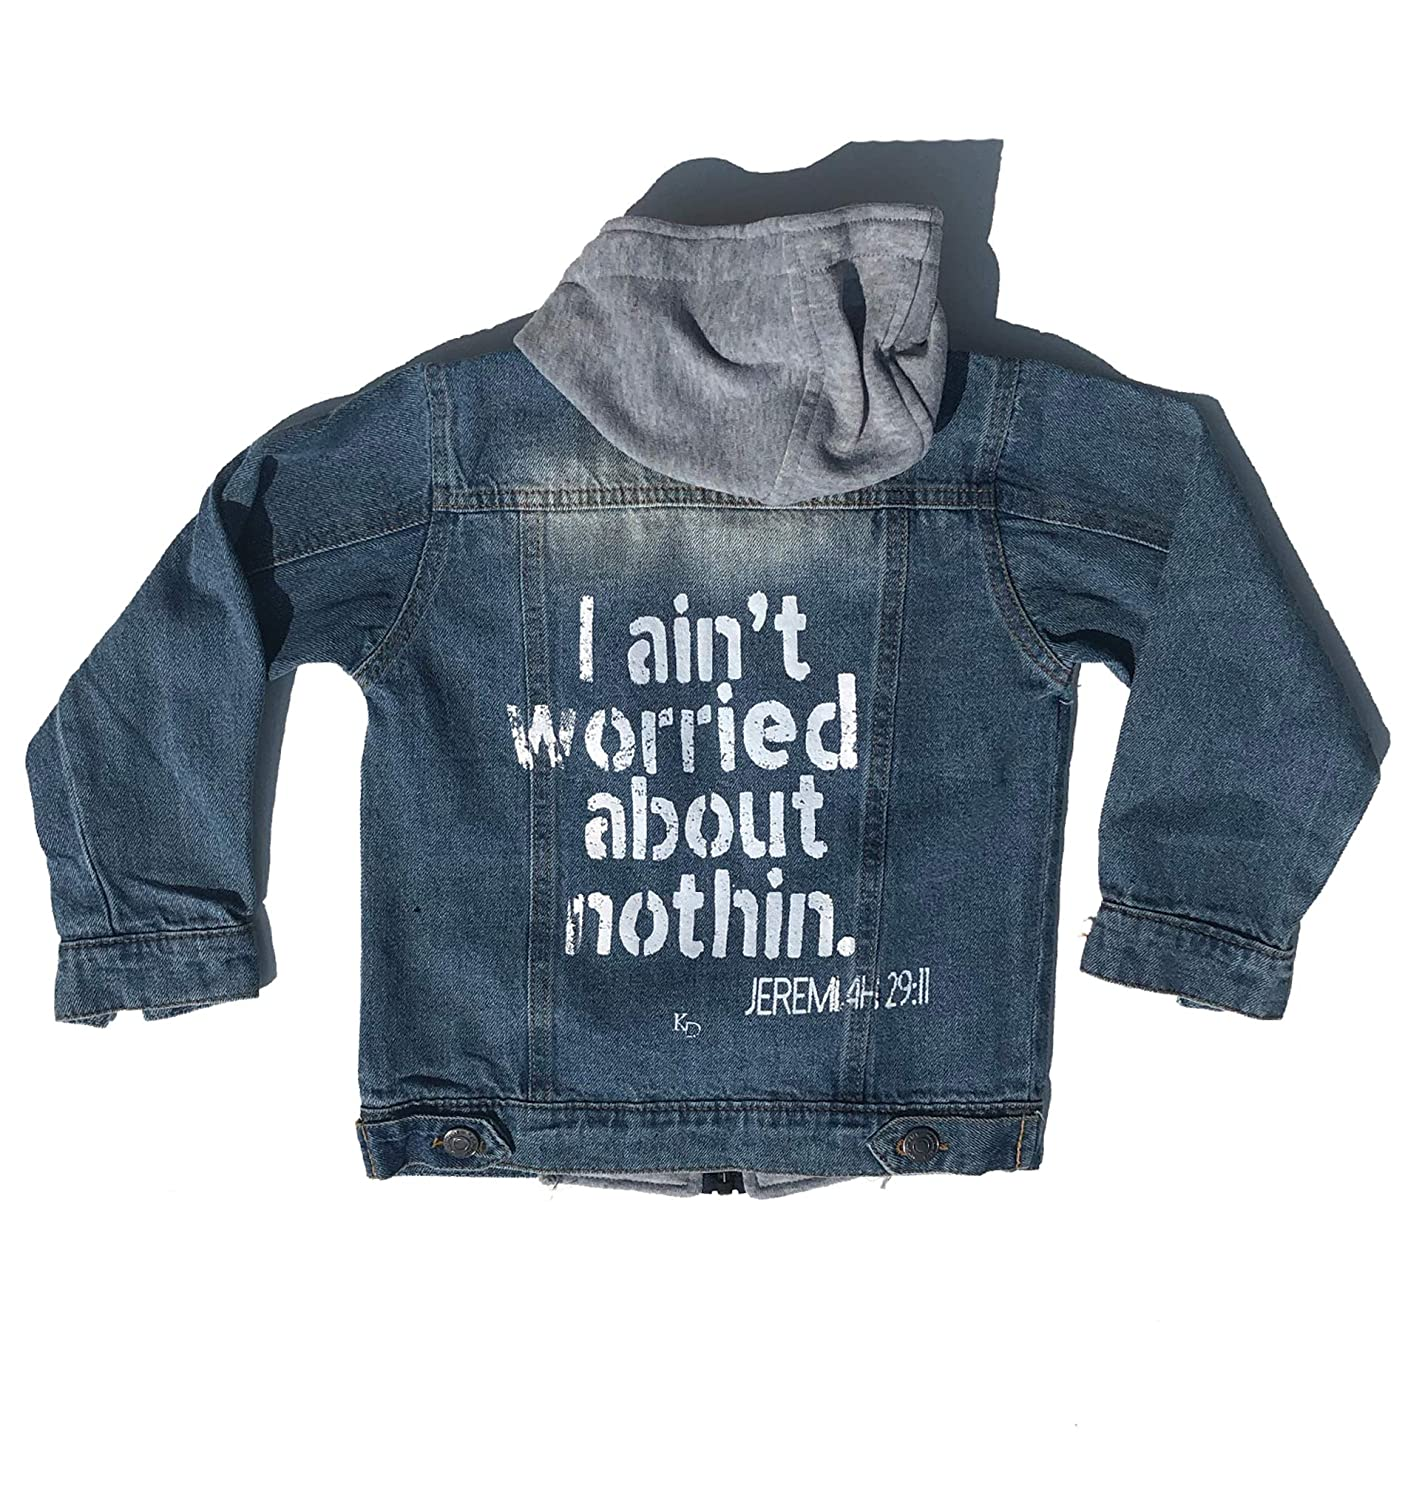 and The ENcore Screen Printed Unisex Kids Boys Girls Hooded Fall Zippered Denim Jacket The Original The REmix